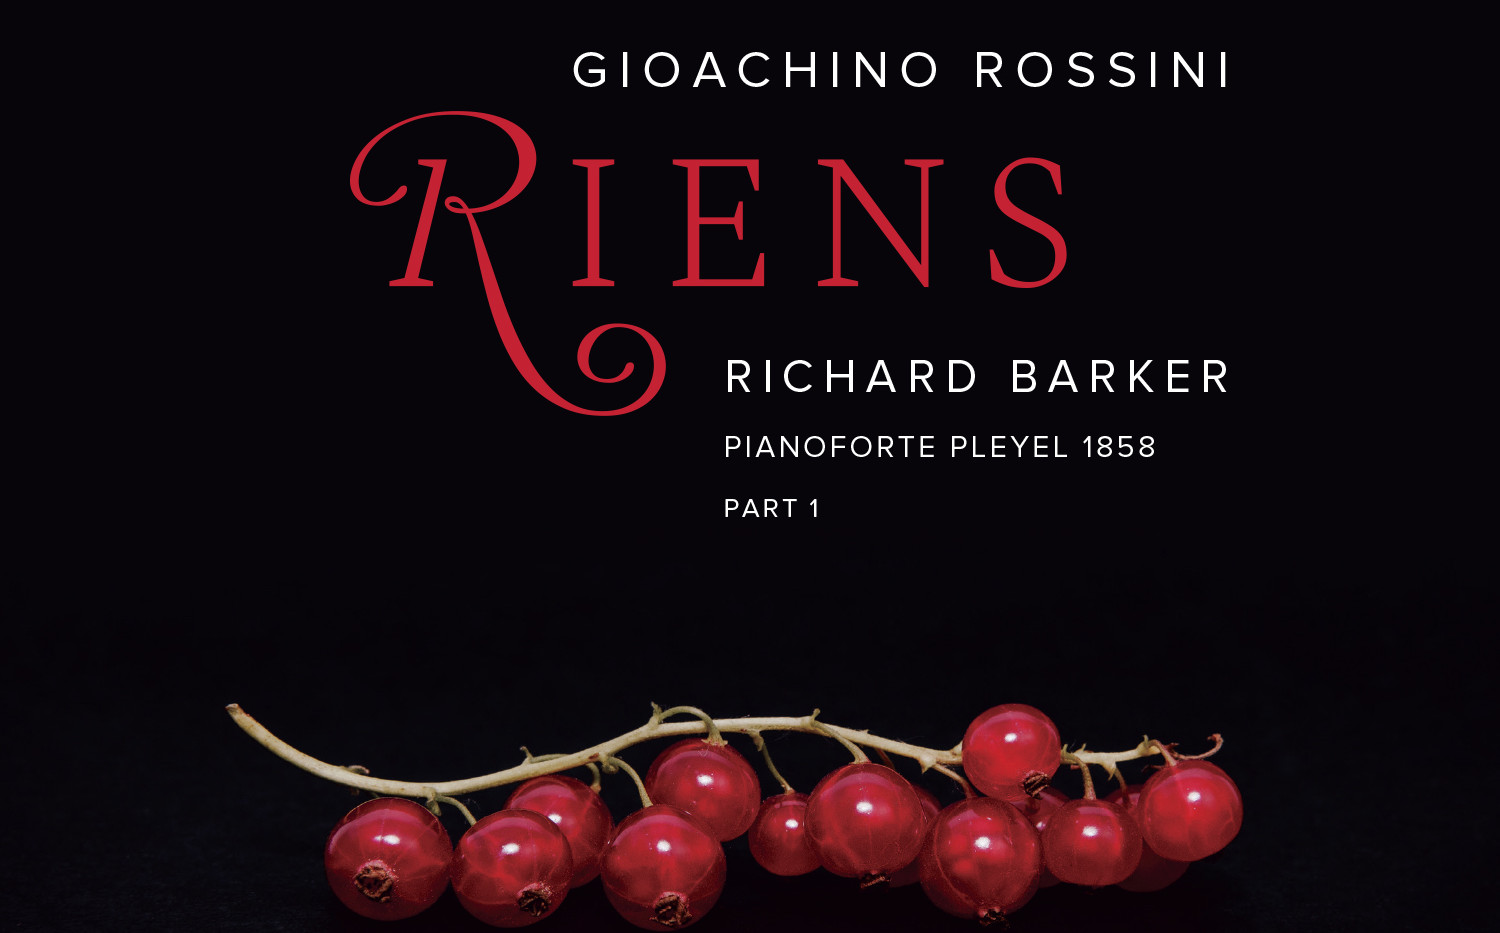 CD Riens Rossini